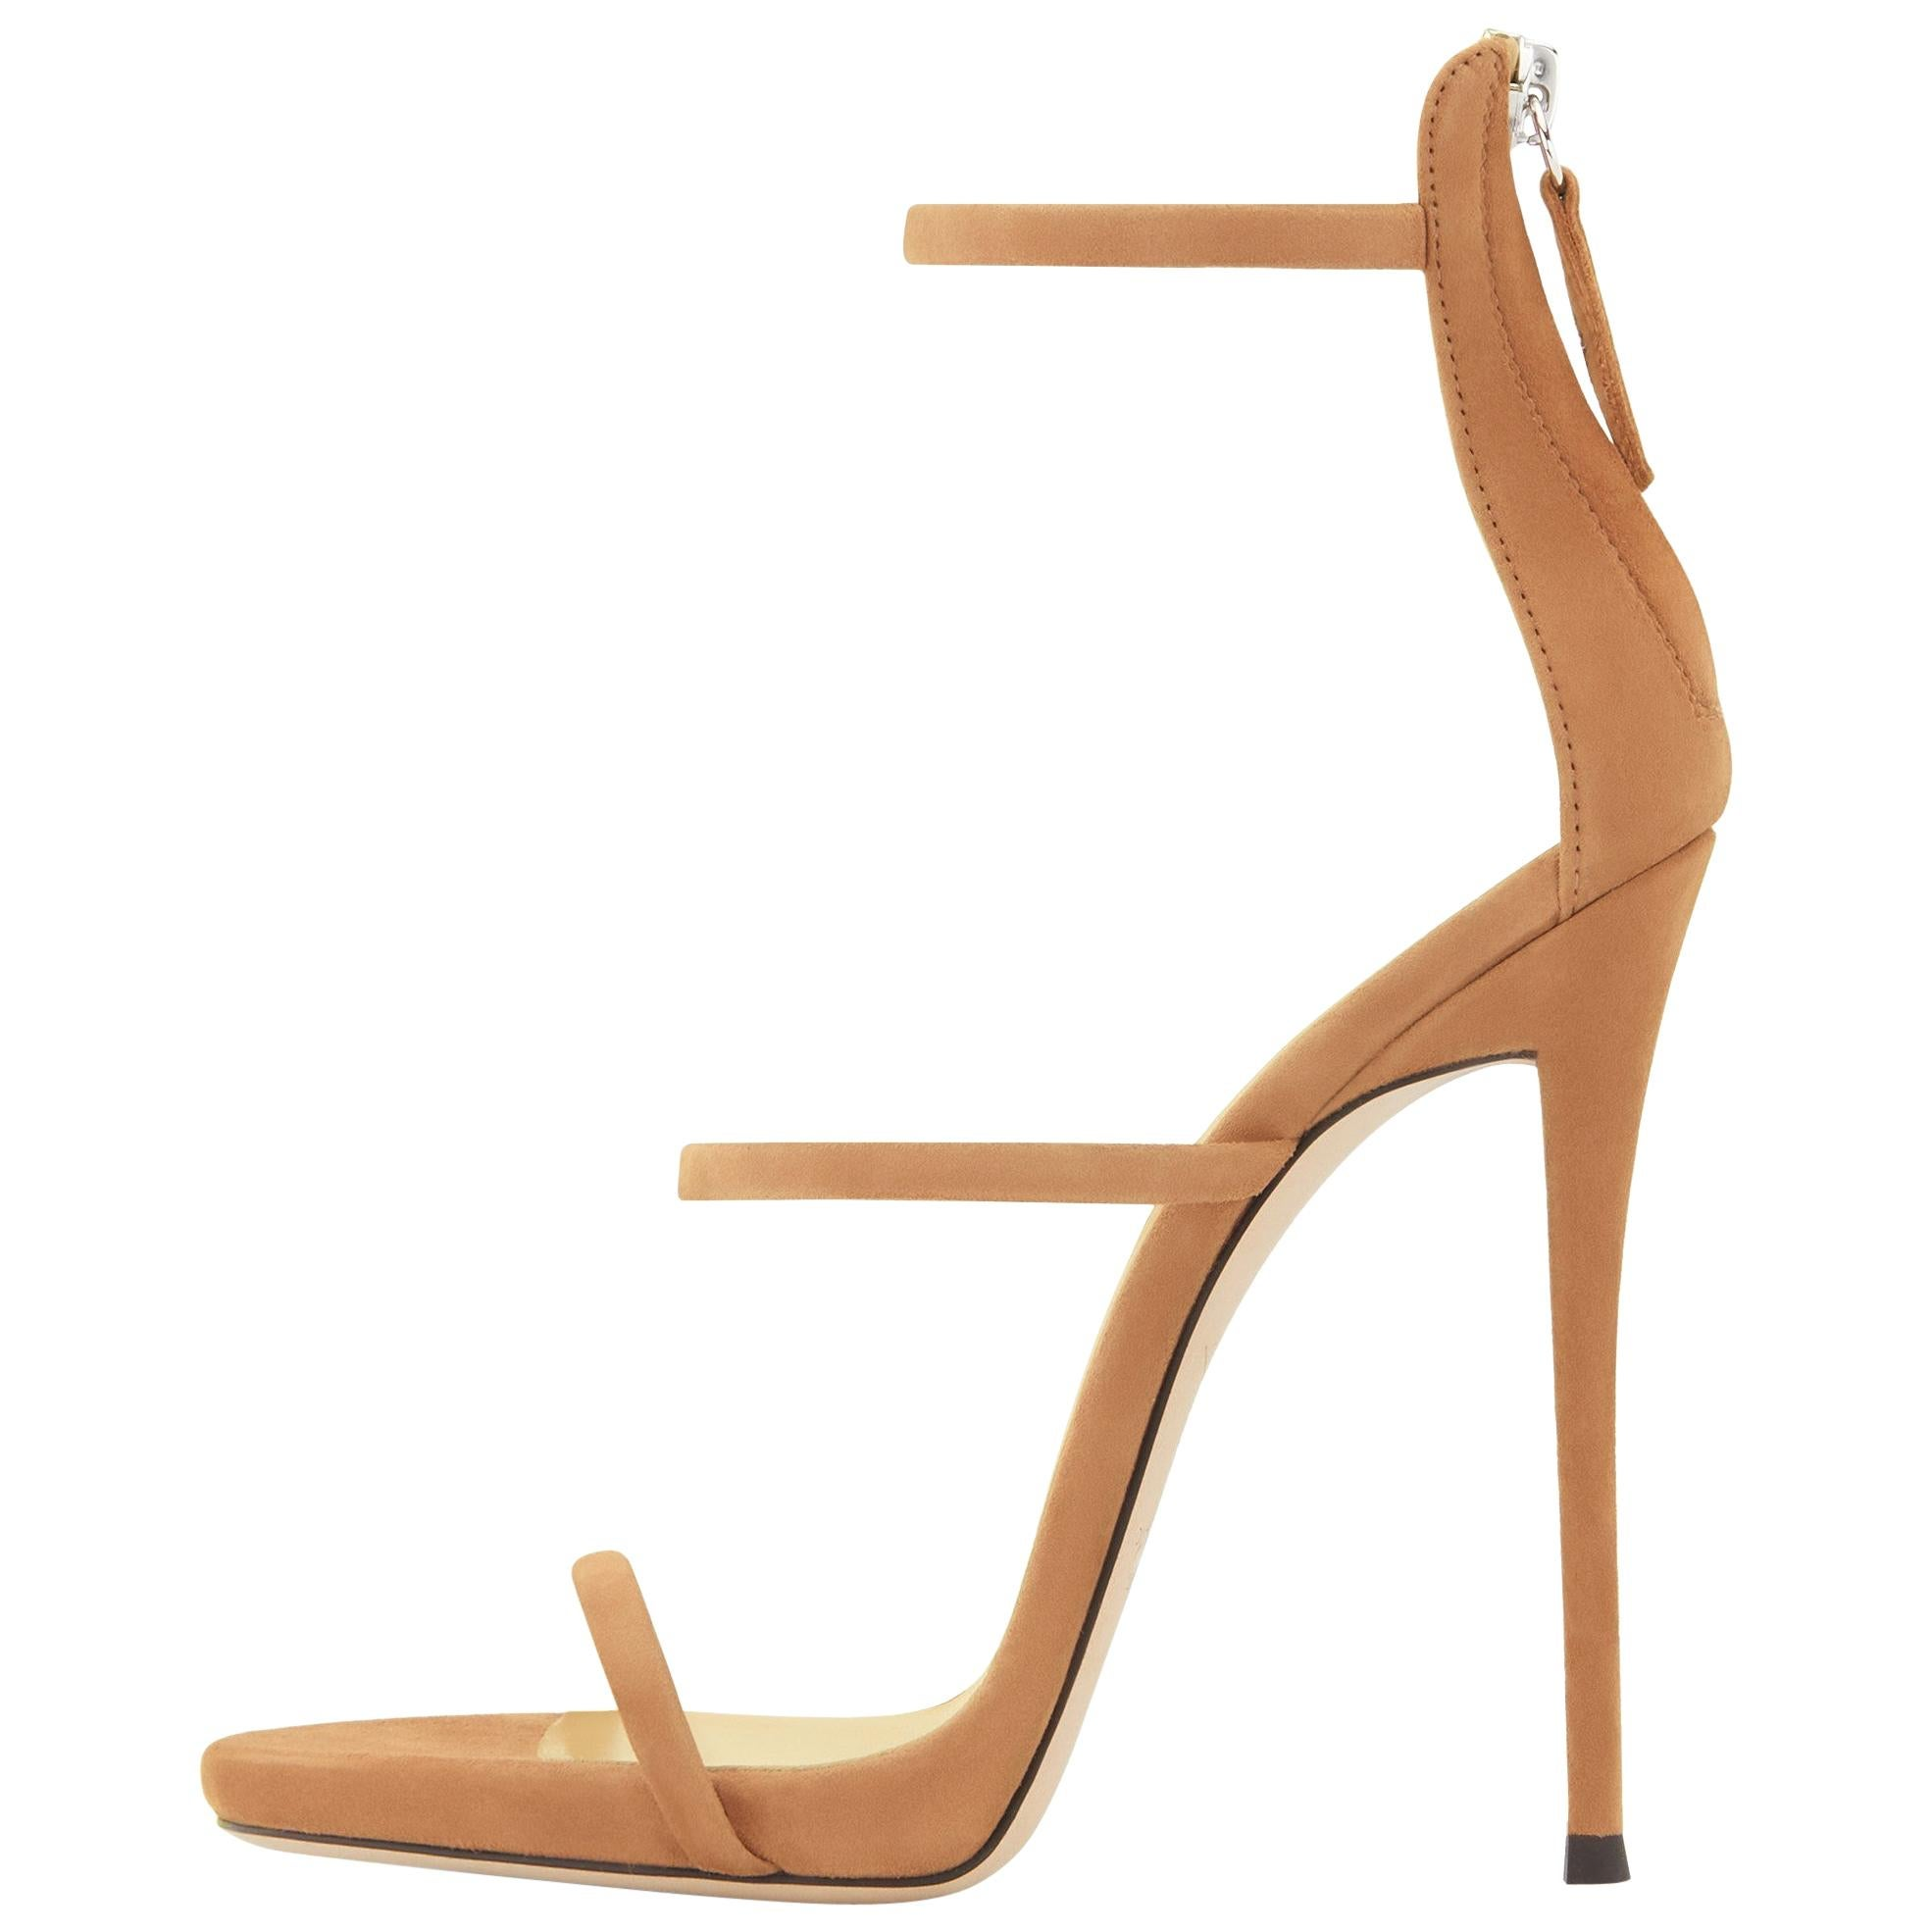 Giuseppe Zanotti NEW Nude Tan Suede Strappy Evening Sandals Heels in Box (IT 41)